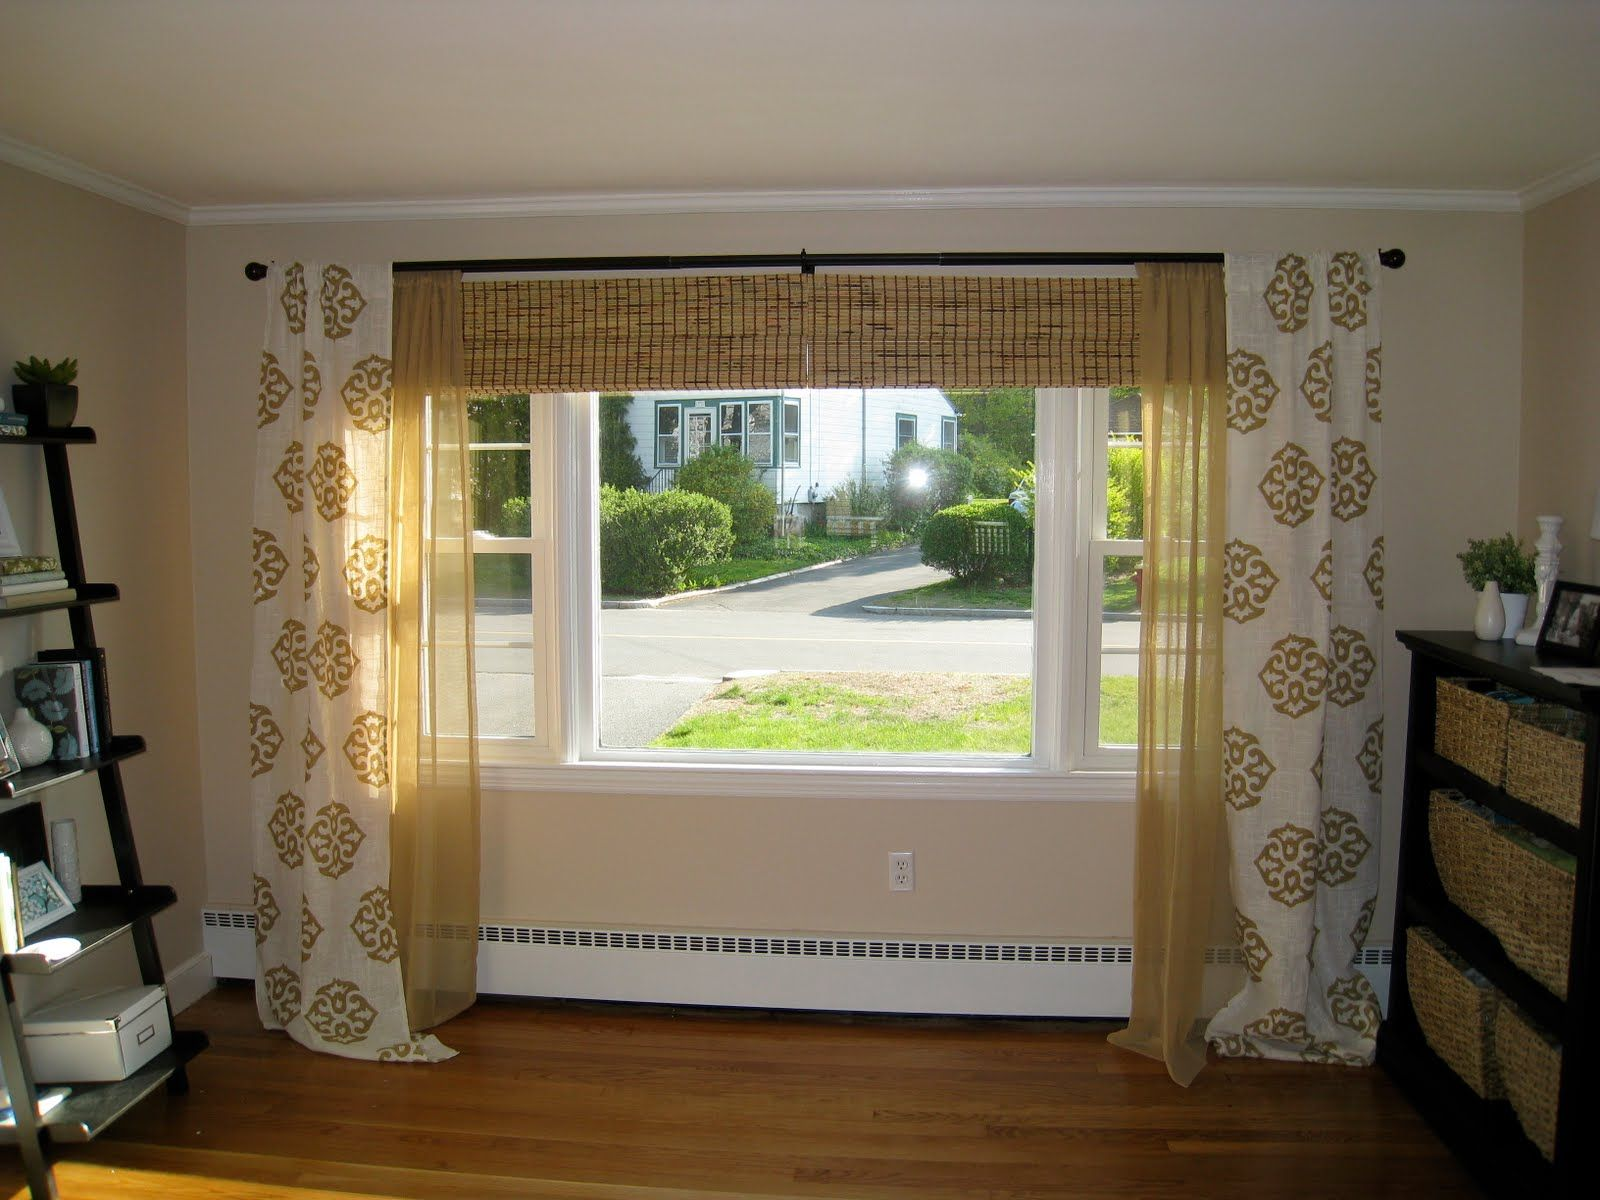 Reno 366 Curtains Round 3 Window Curtains Living Room Window Treatments Living Room Window Treatments Bedroom